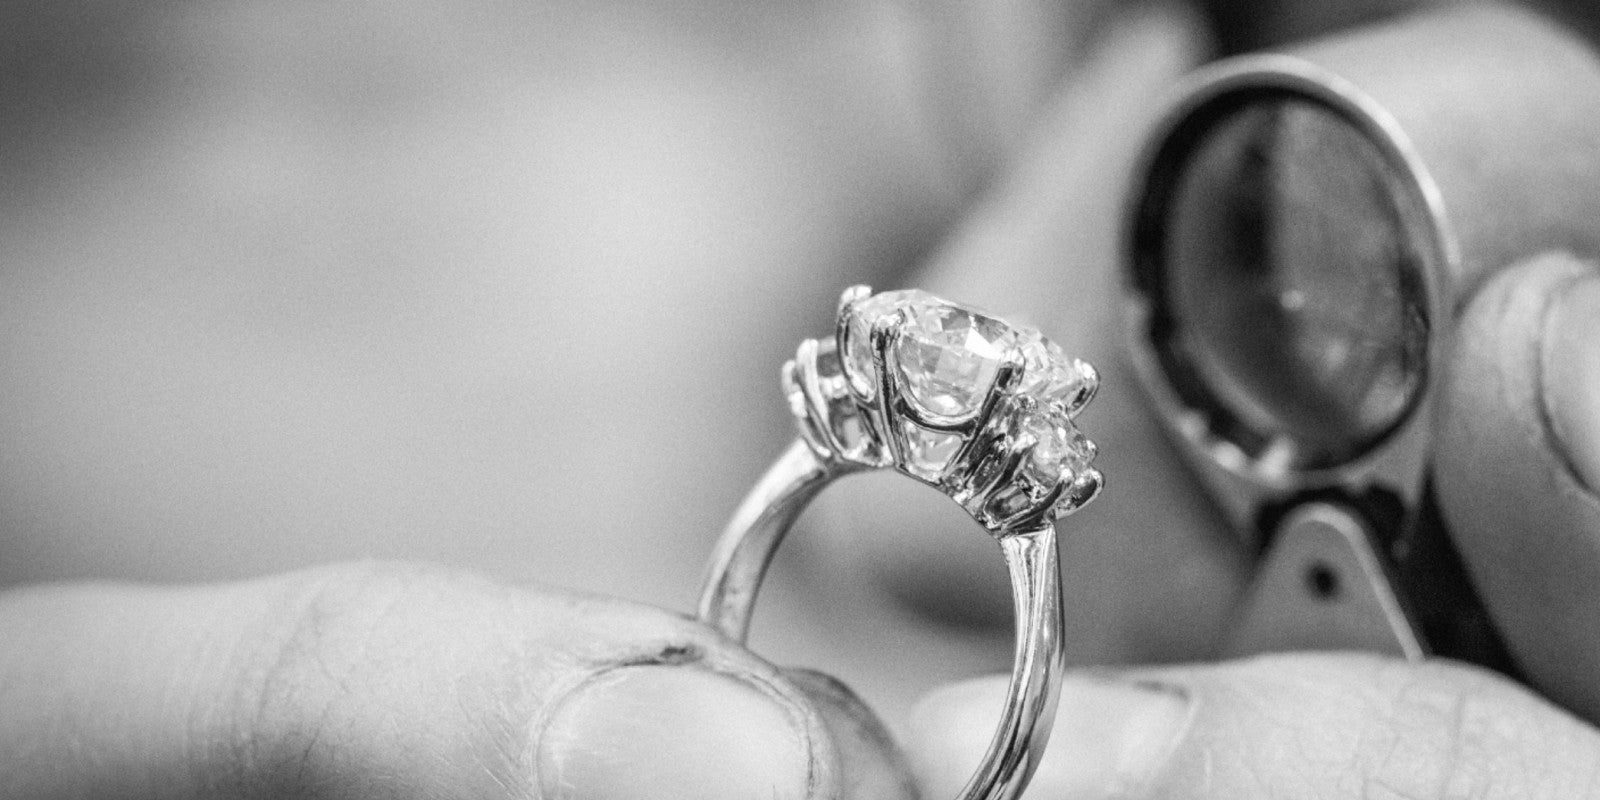 Jeweller looking at a three stone lab grown diamond engagement ring through a jewellers loupe